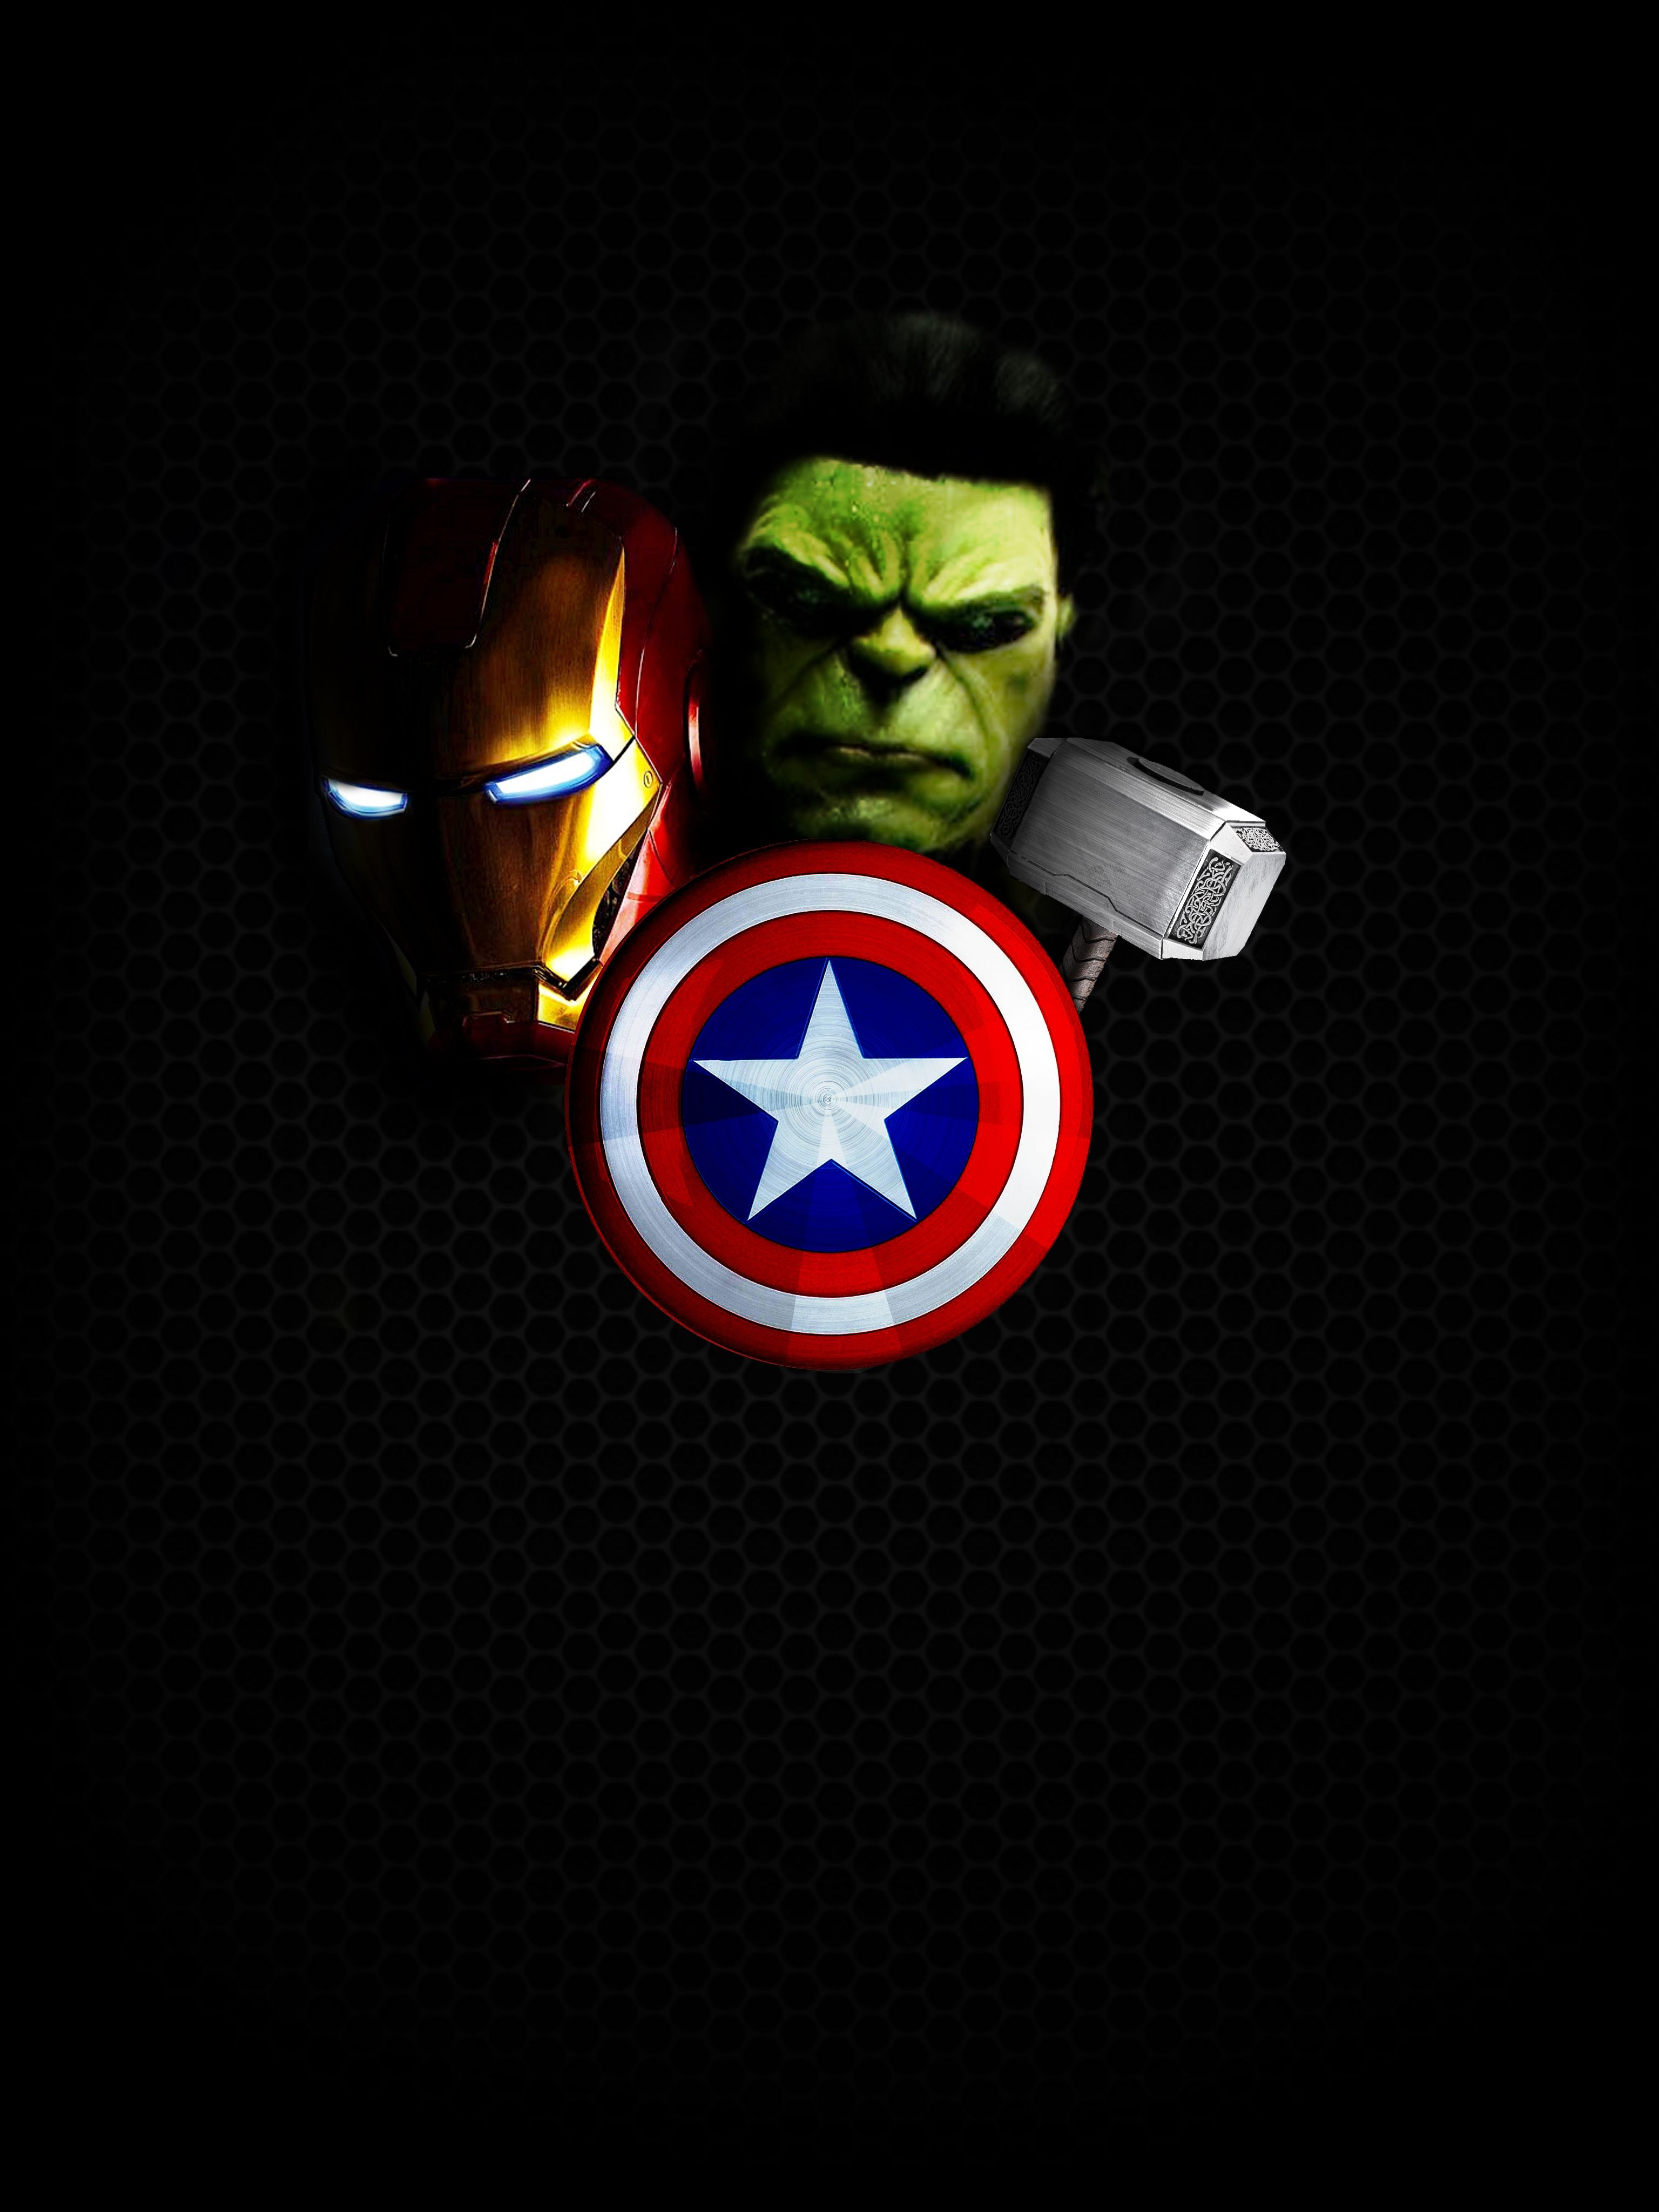 best images about Avengers iPhone Wallpaper on Pinterest